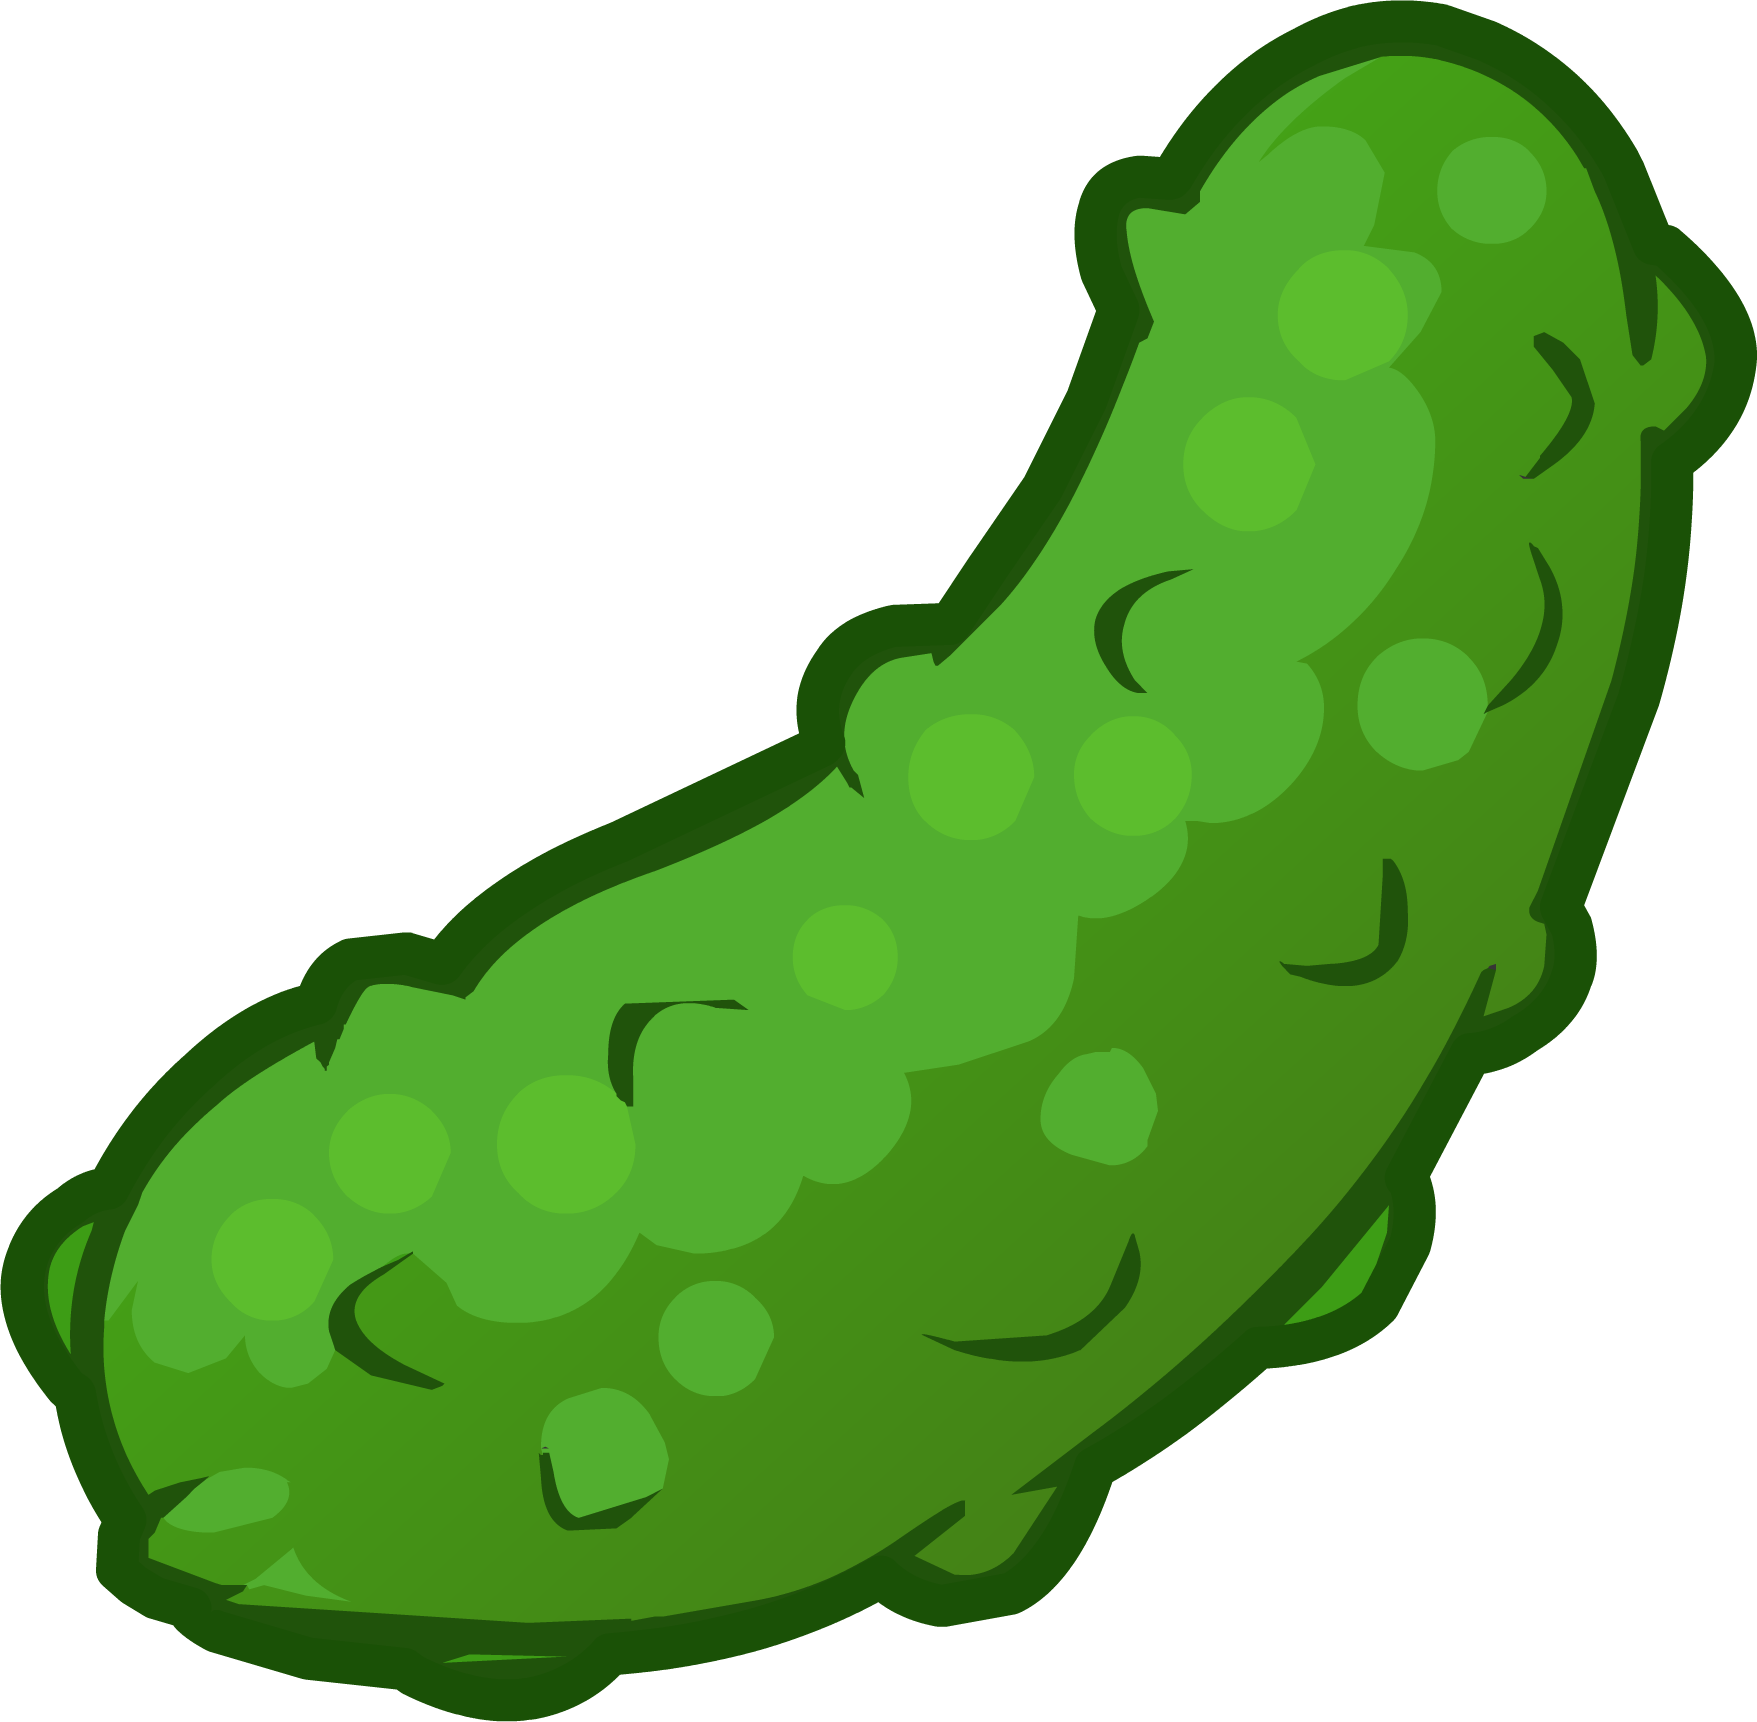 Free pickles cliparts download. Pickle clipart jpg black and white